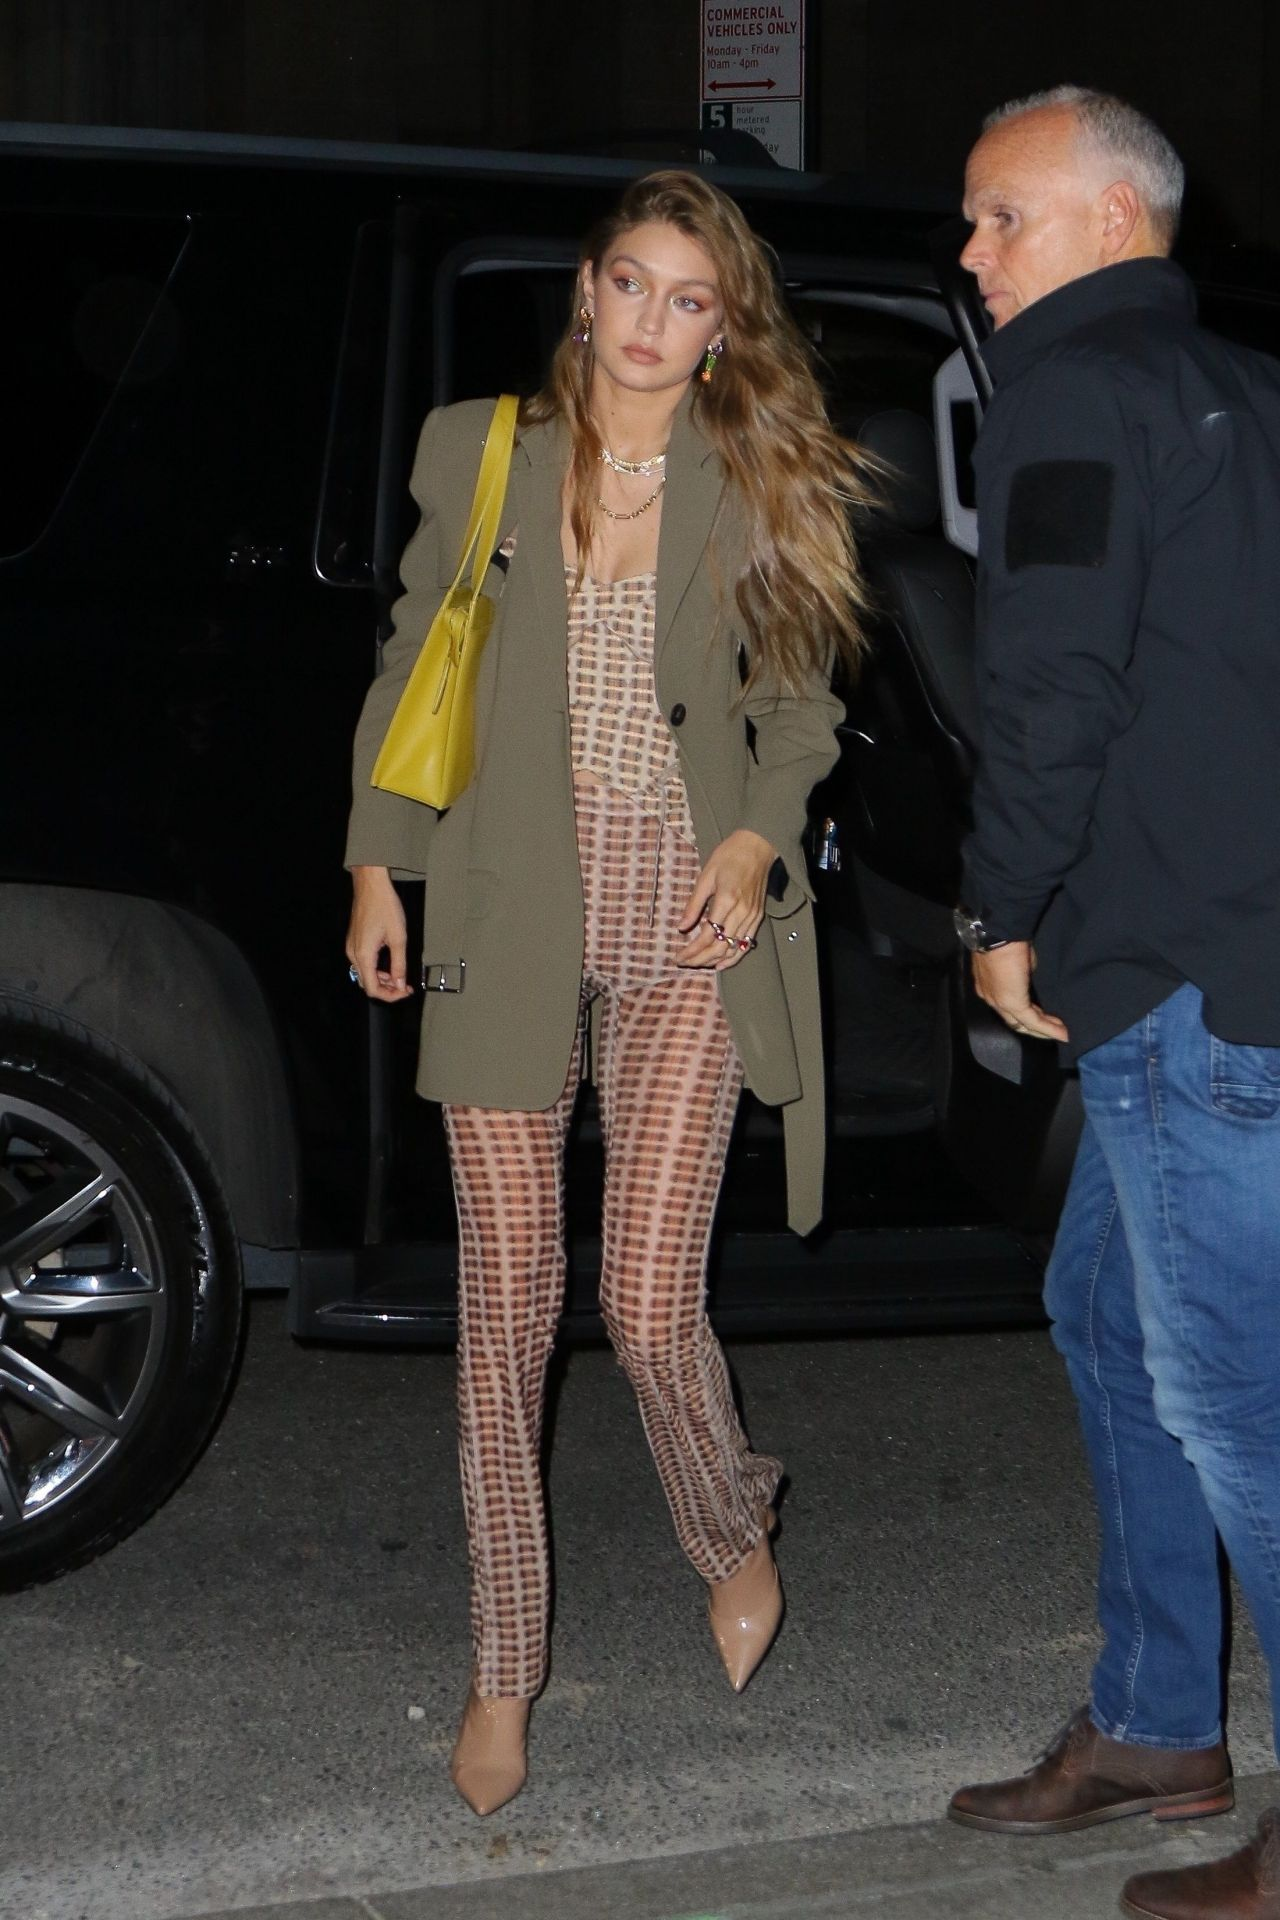 Gigi Hadid Night Out Style – L'Avenue at Saks in NY 10/10/2019 #Celebrity #GigiHadid #Photos #Pics #Private